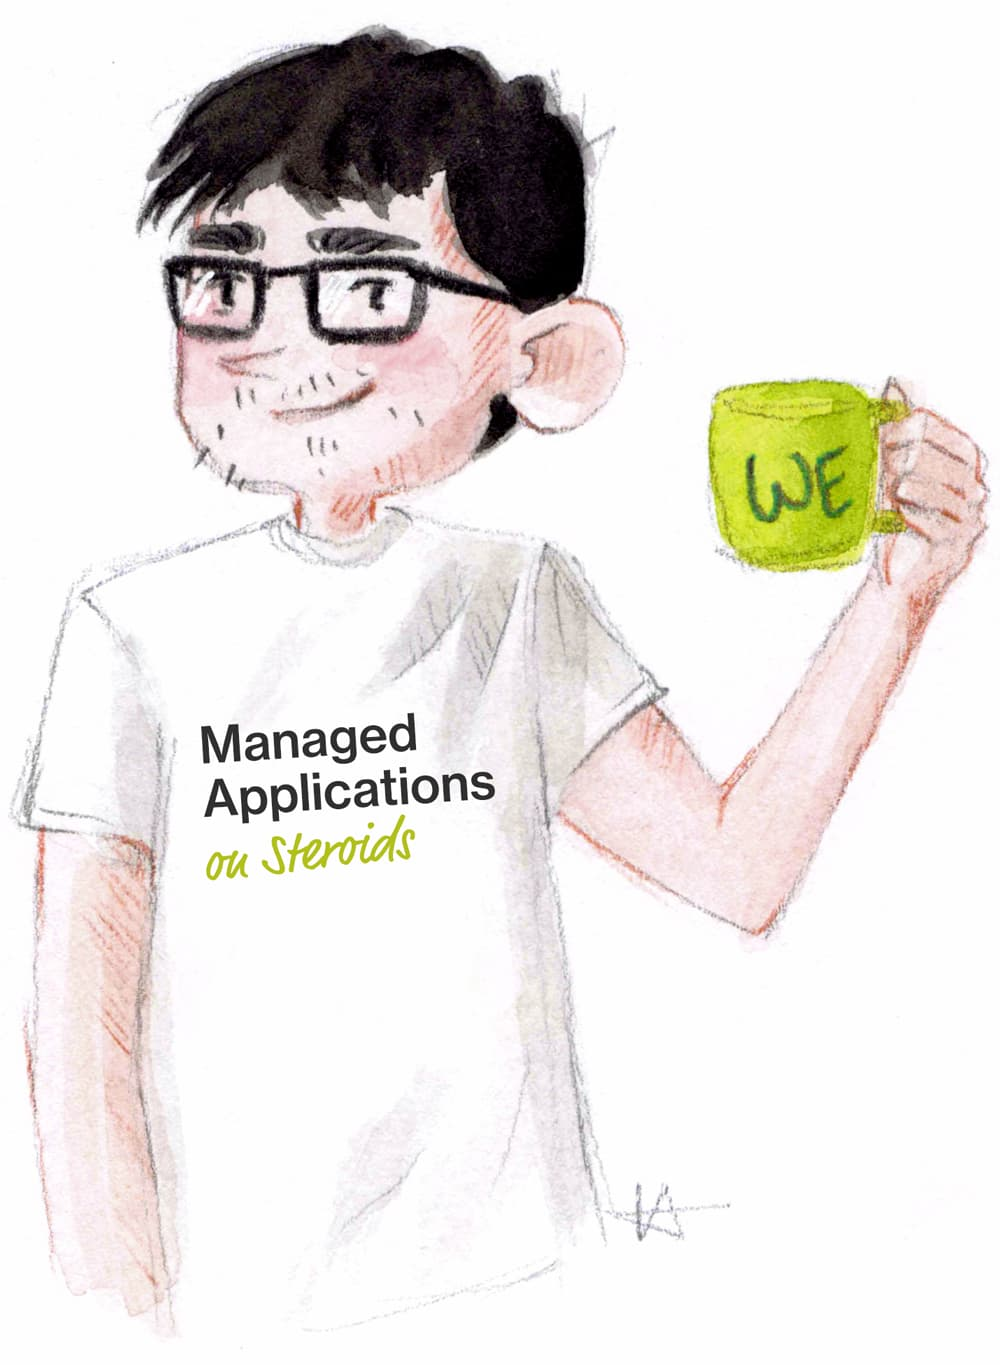 TWENTY |20 Managed Applications on Steroids